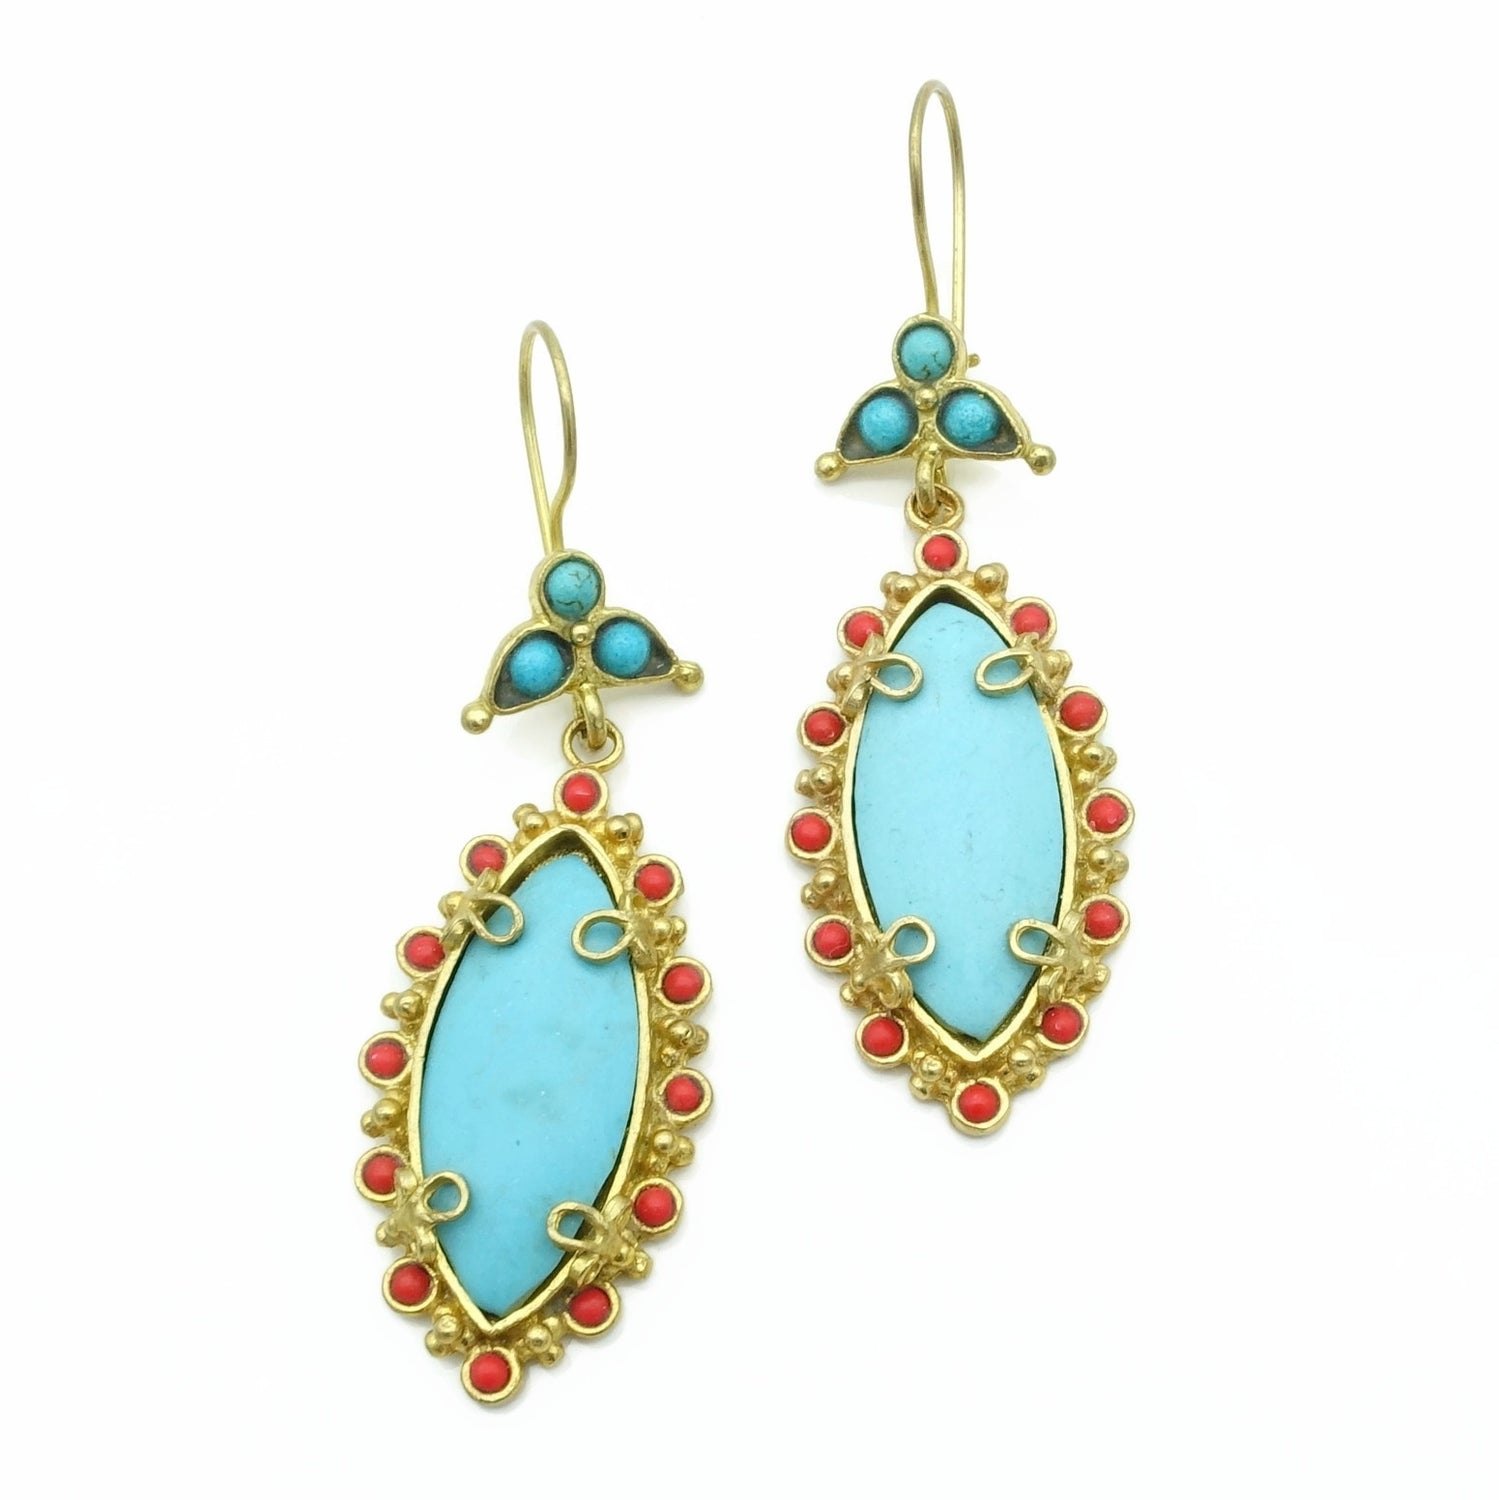 Aylas Turquoise Coral earrings - 21ct Gold plated semi precious gemstone - Handmade